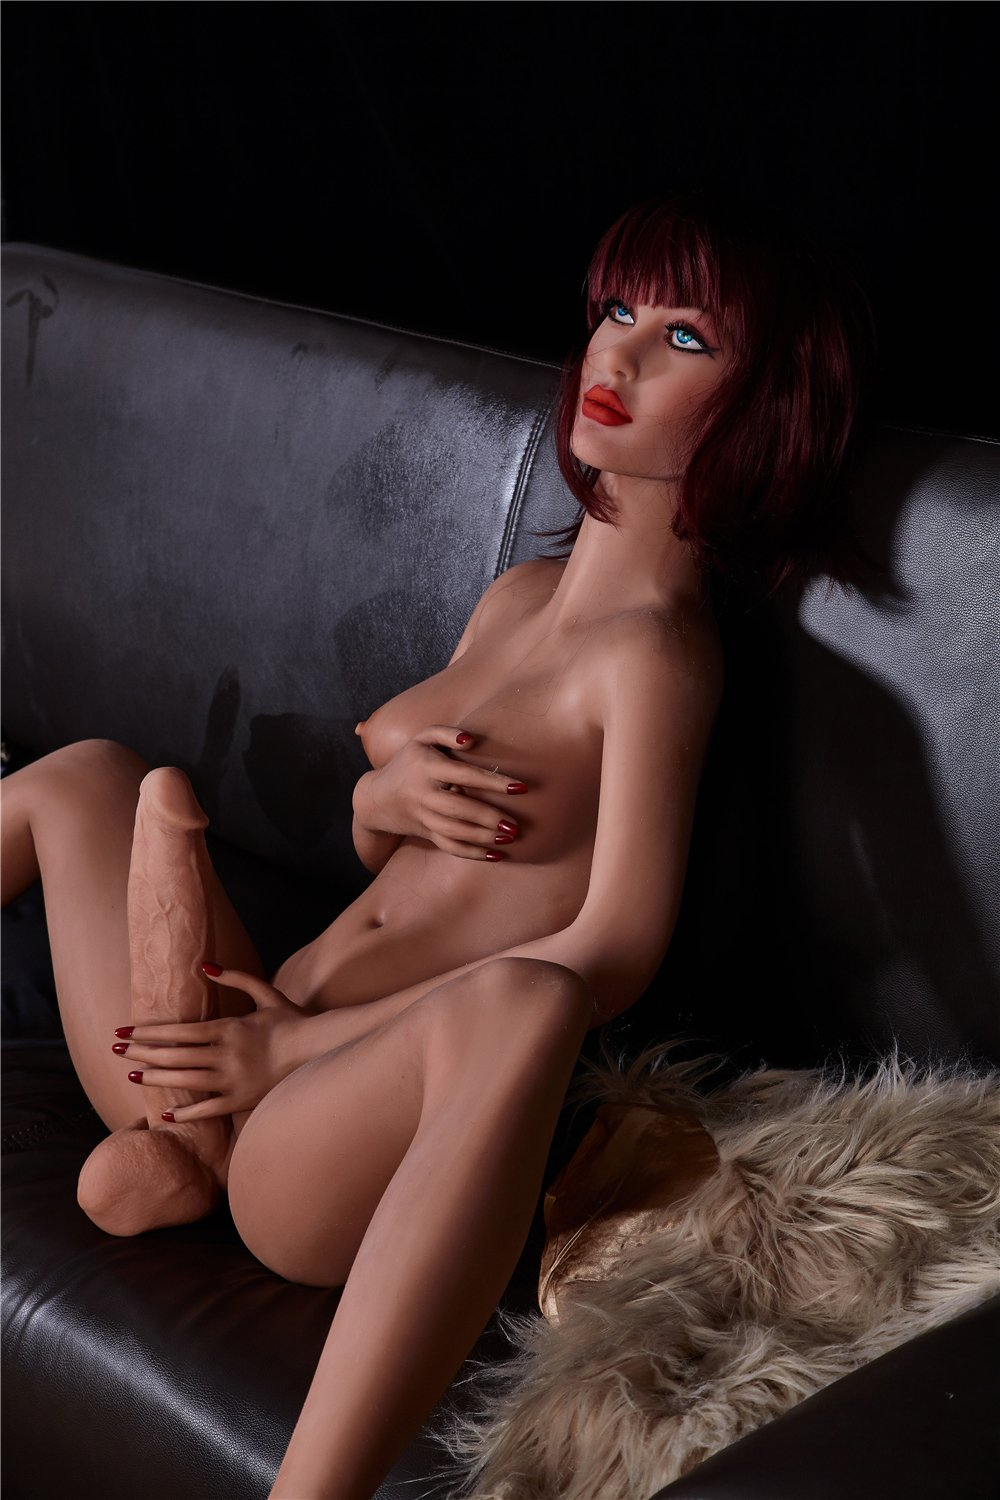 stella 155cm red hair tpe transsexual shemale gay boy sex doll(8)